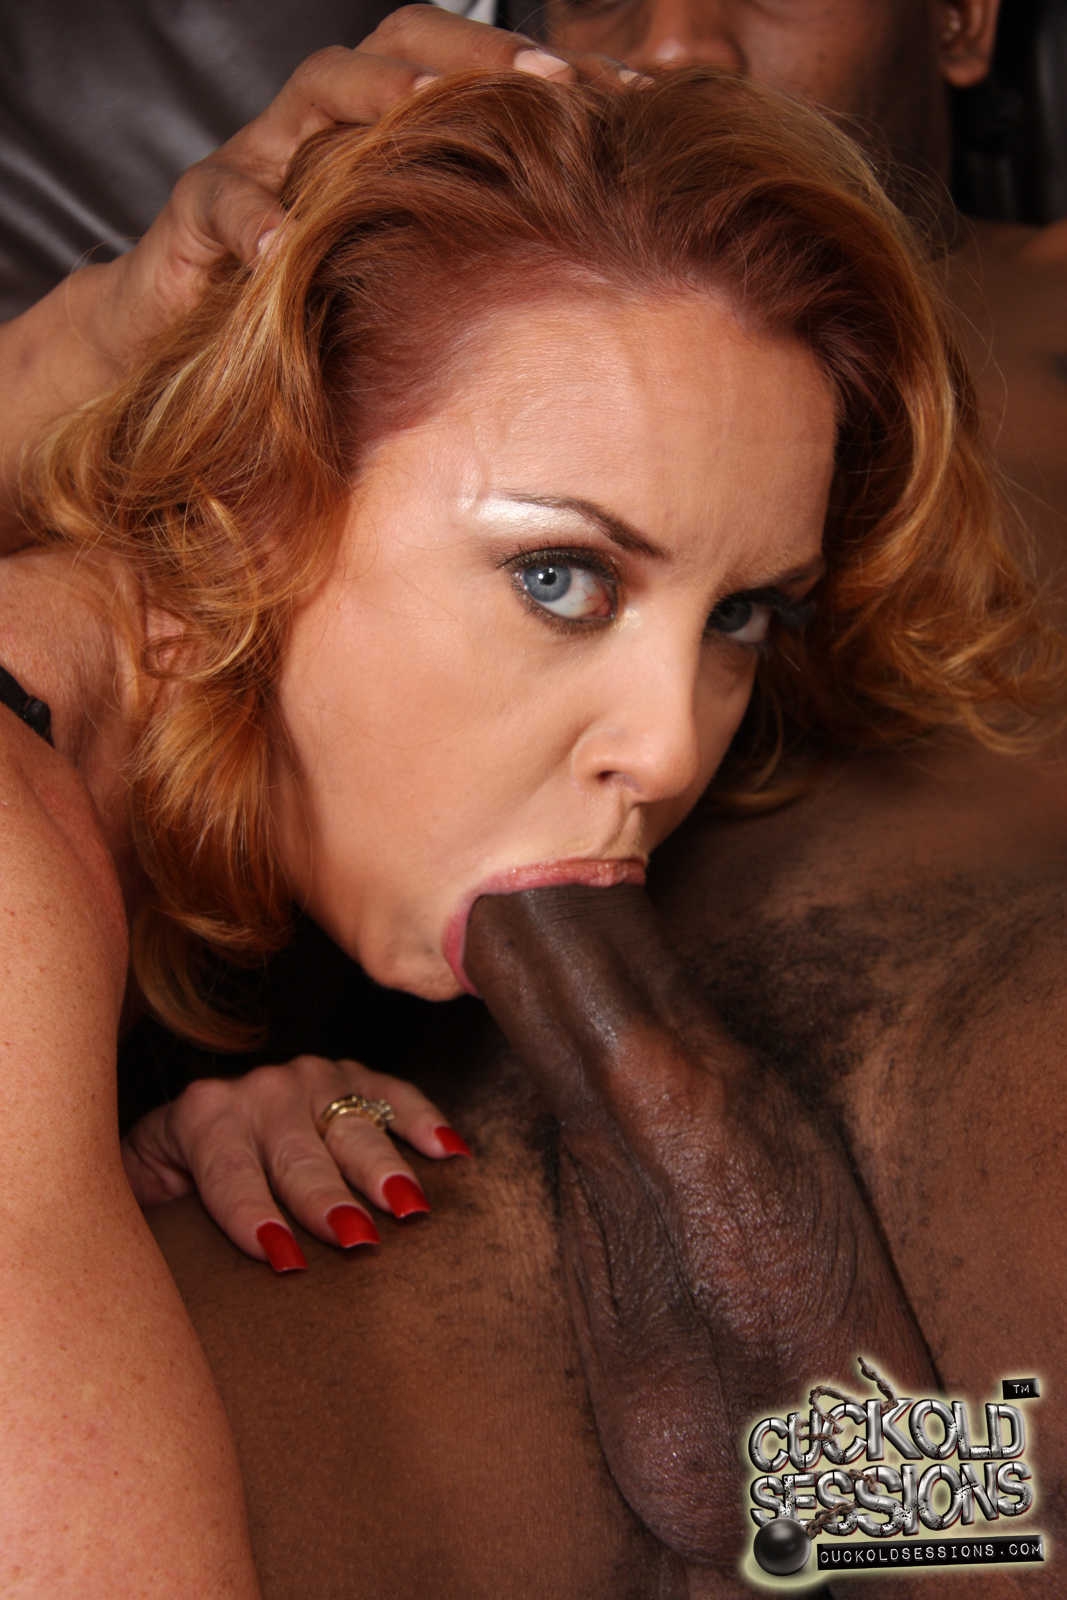 a busty redhead doing two black guys on this one from bob